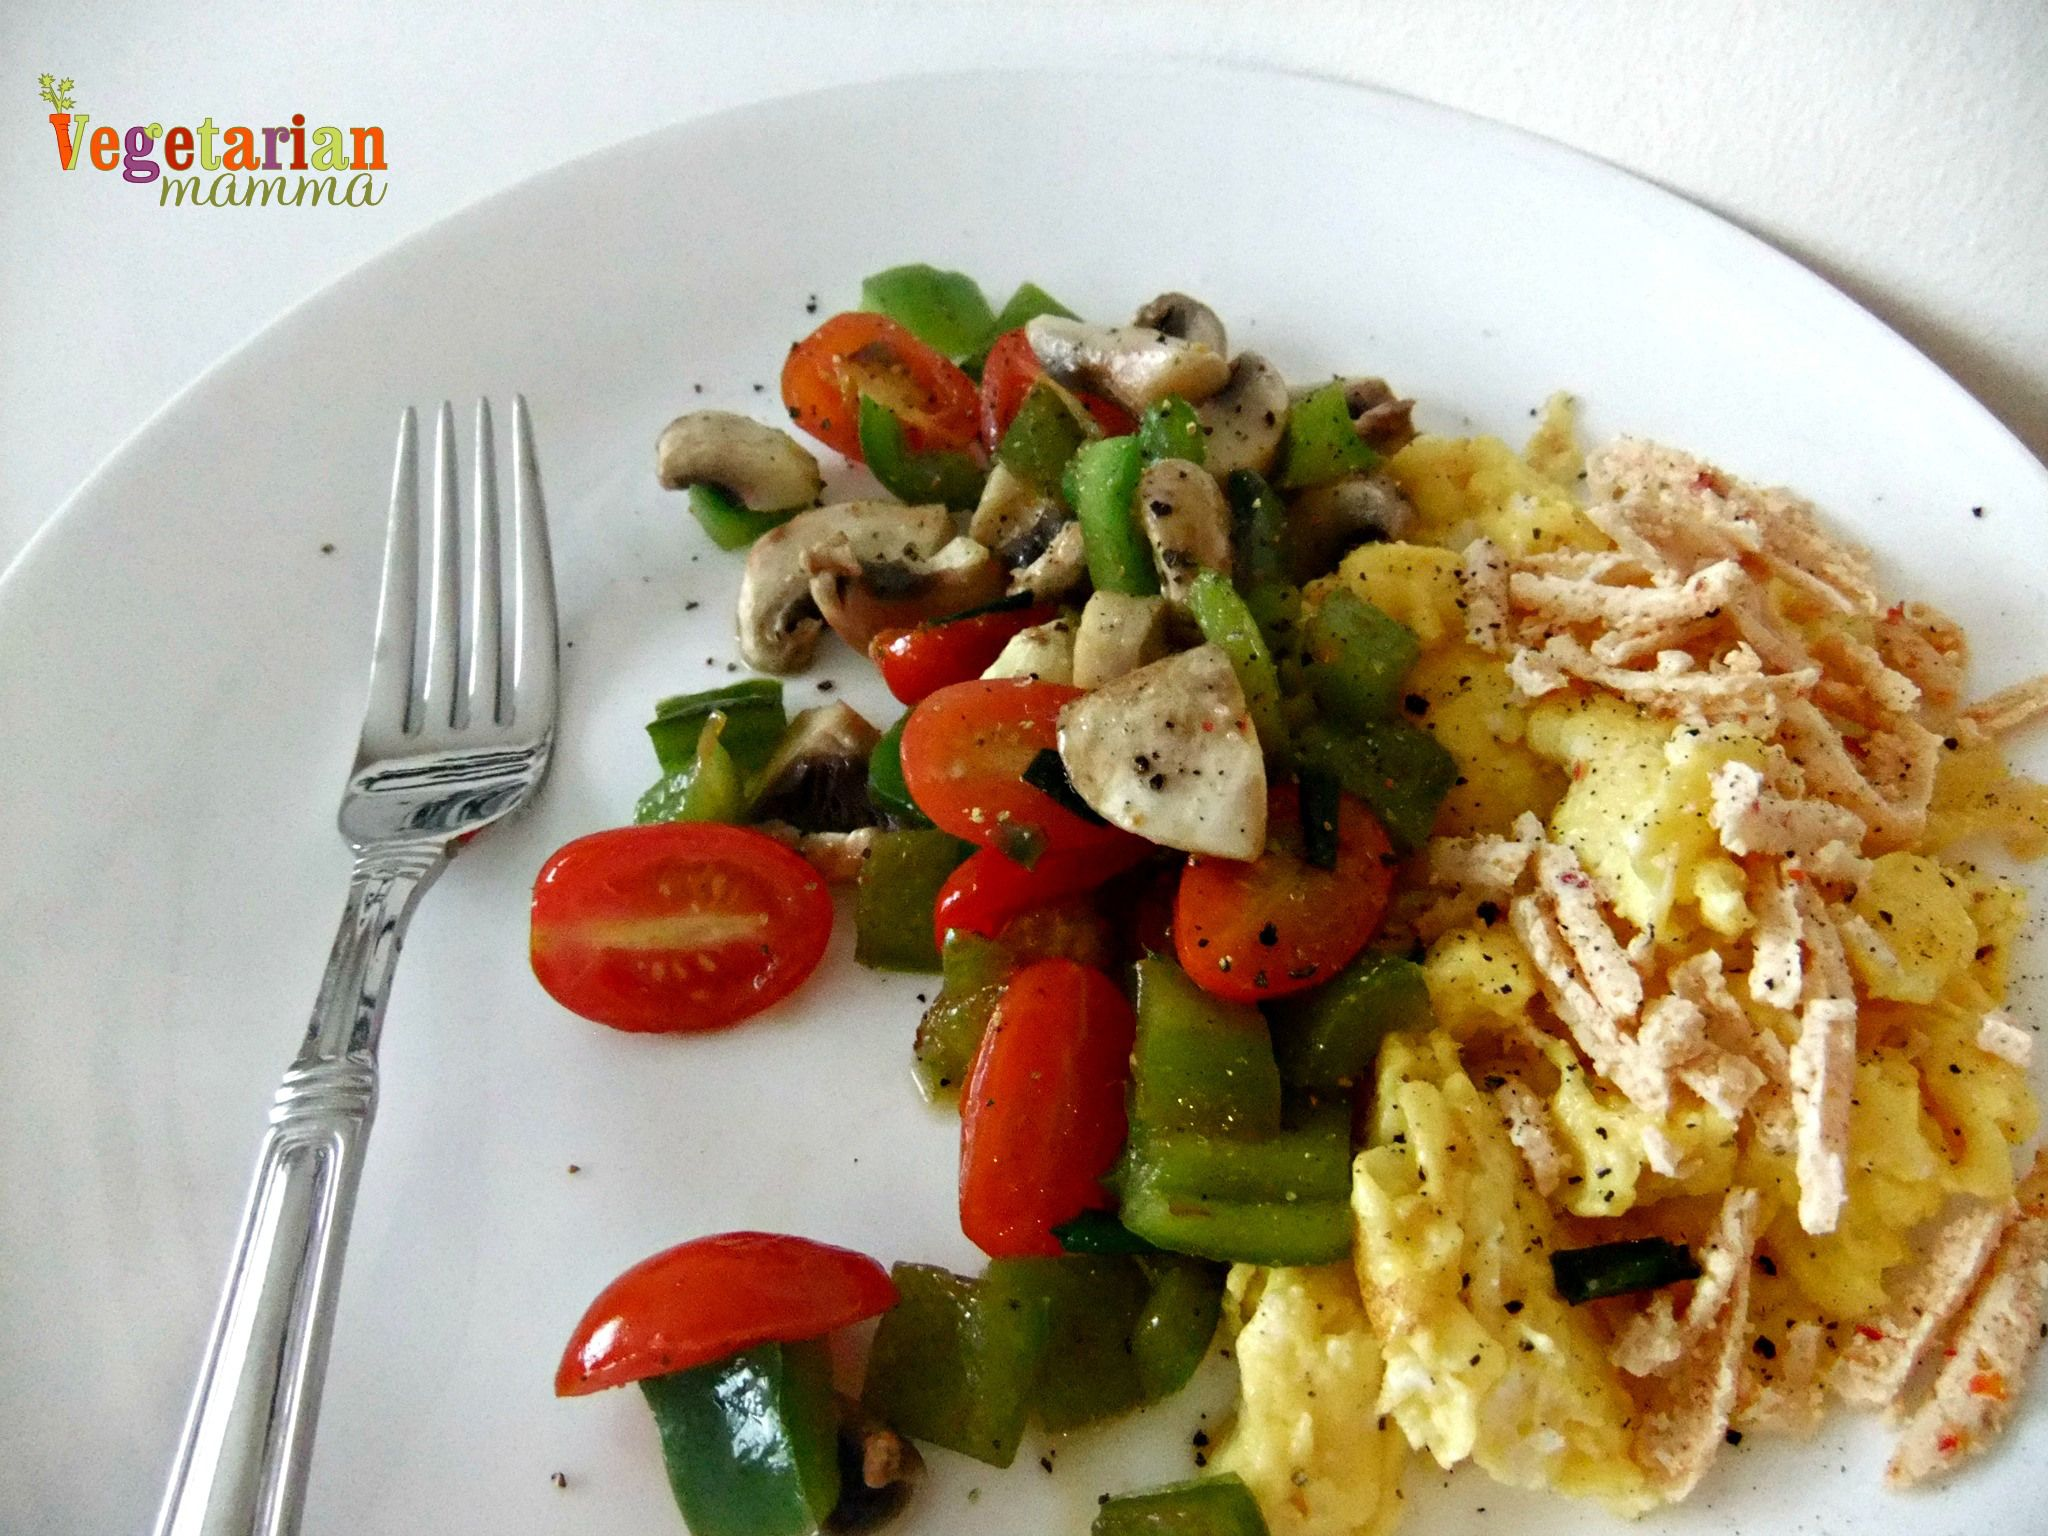 scrambled eggs with vegtables gluten free vegetarianmamma.com